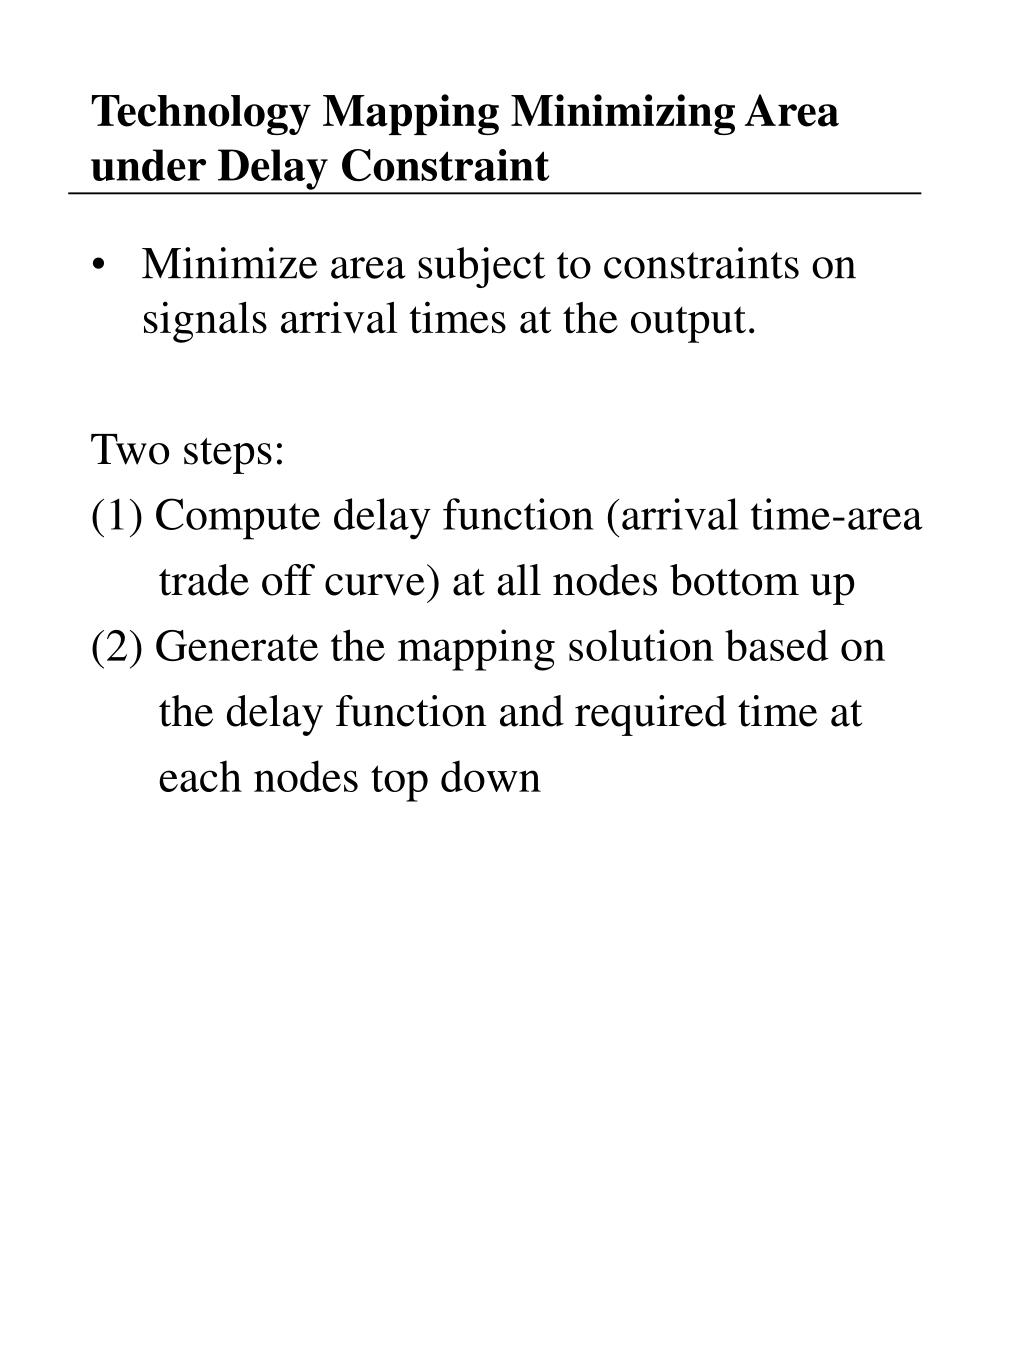 Technology Mapping Minimizing Area under Delay Constraint